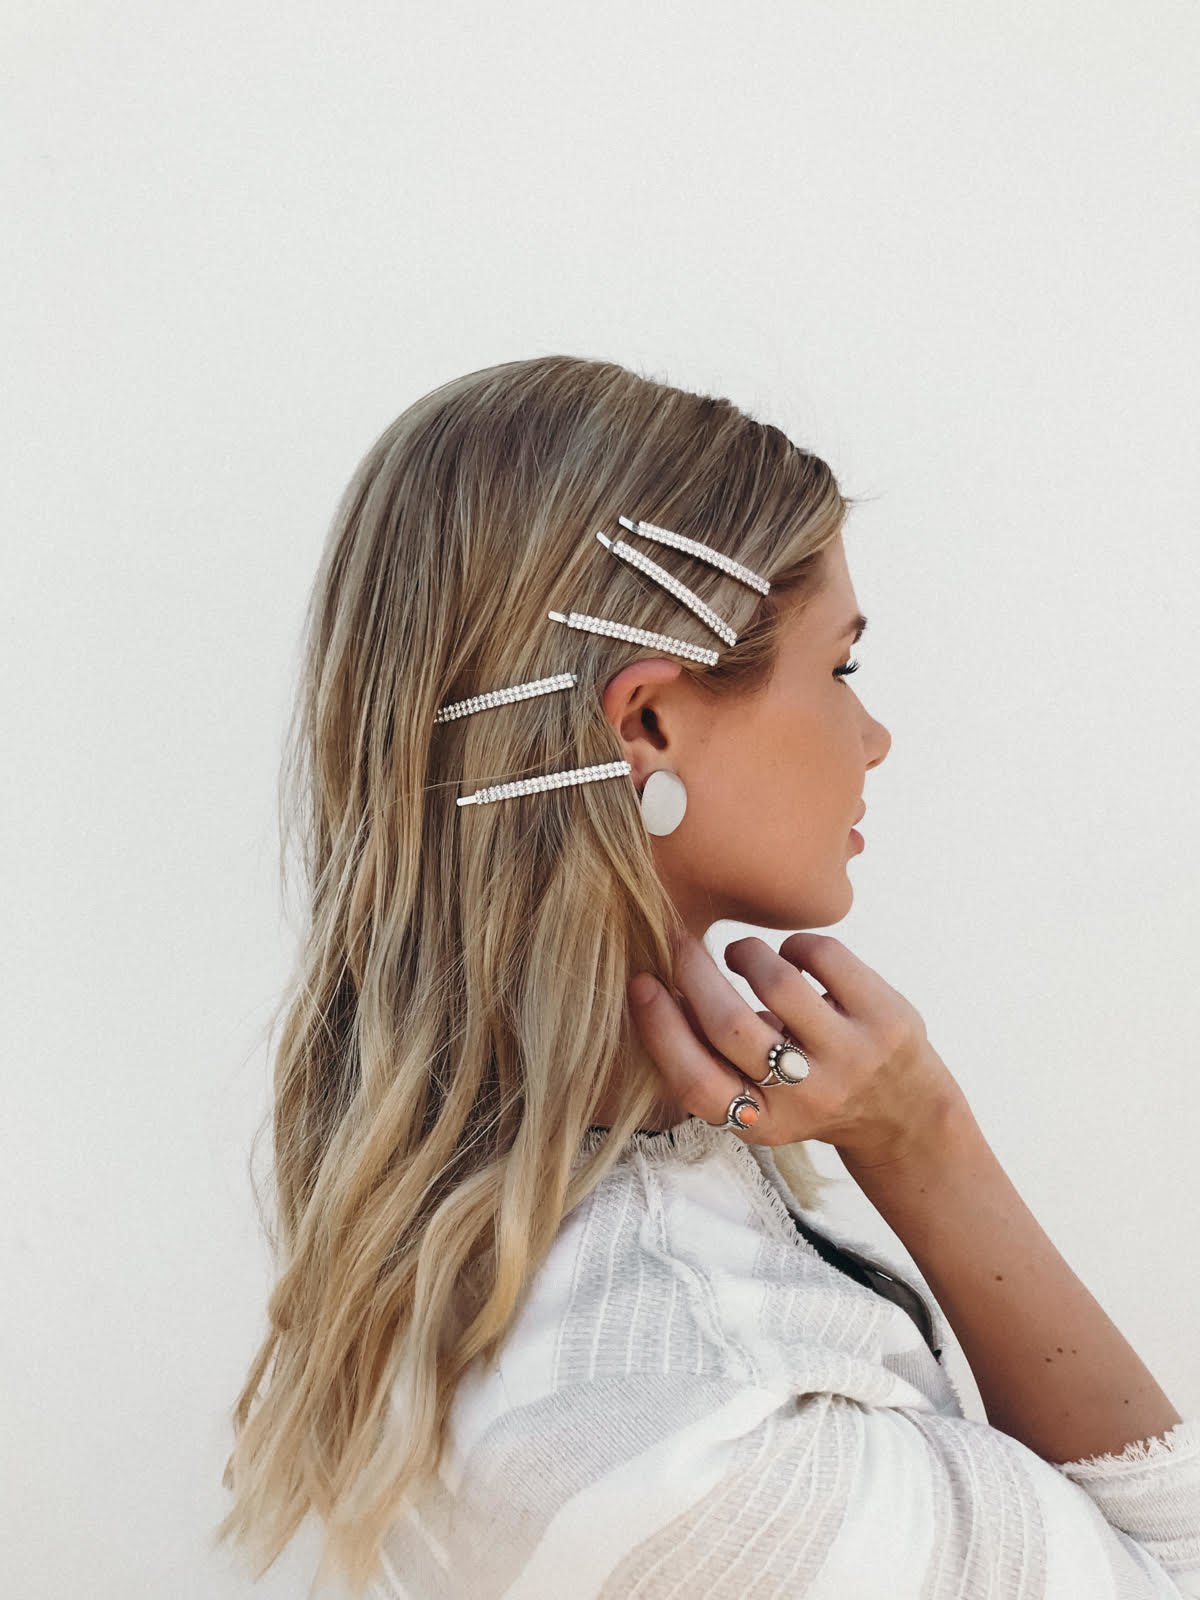 Free 90S Hair Accessories Bringing Back The Barettes Wallpaper